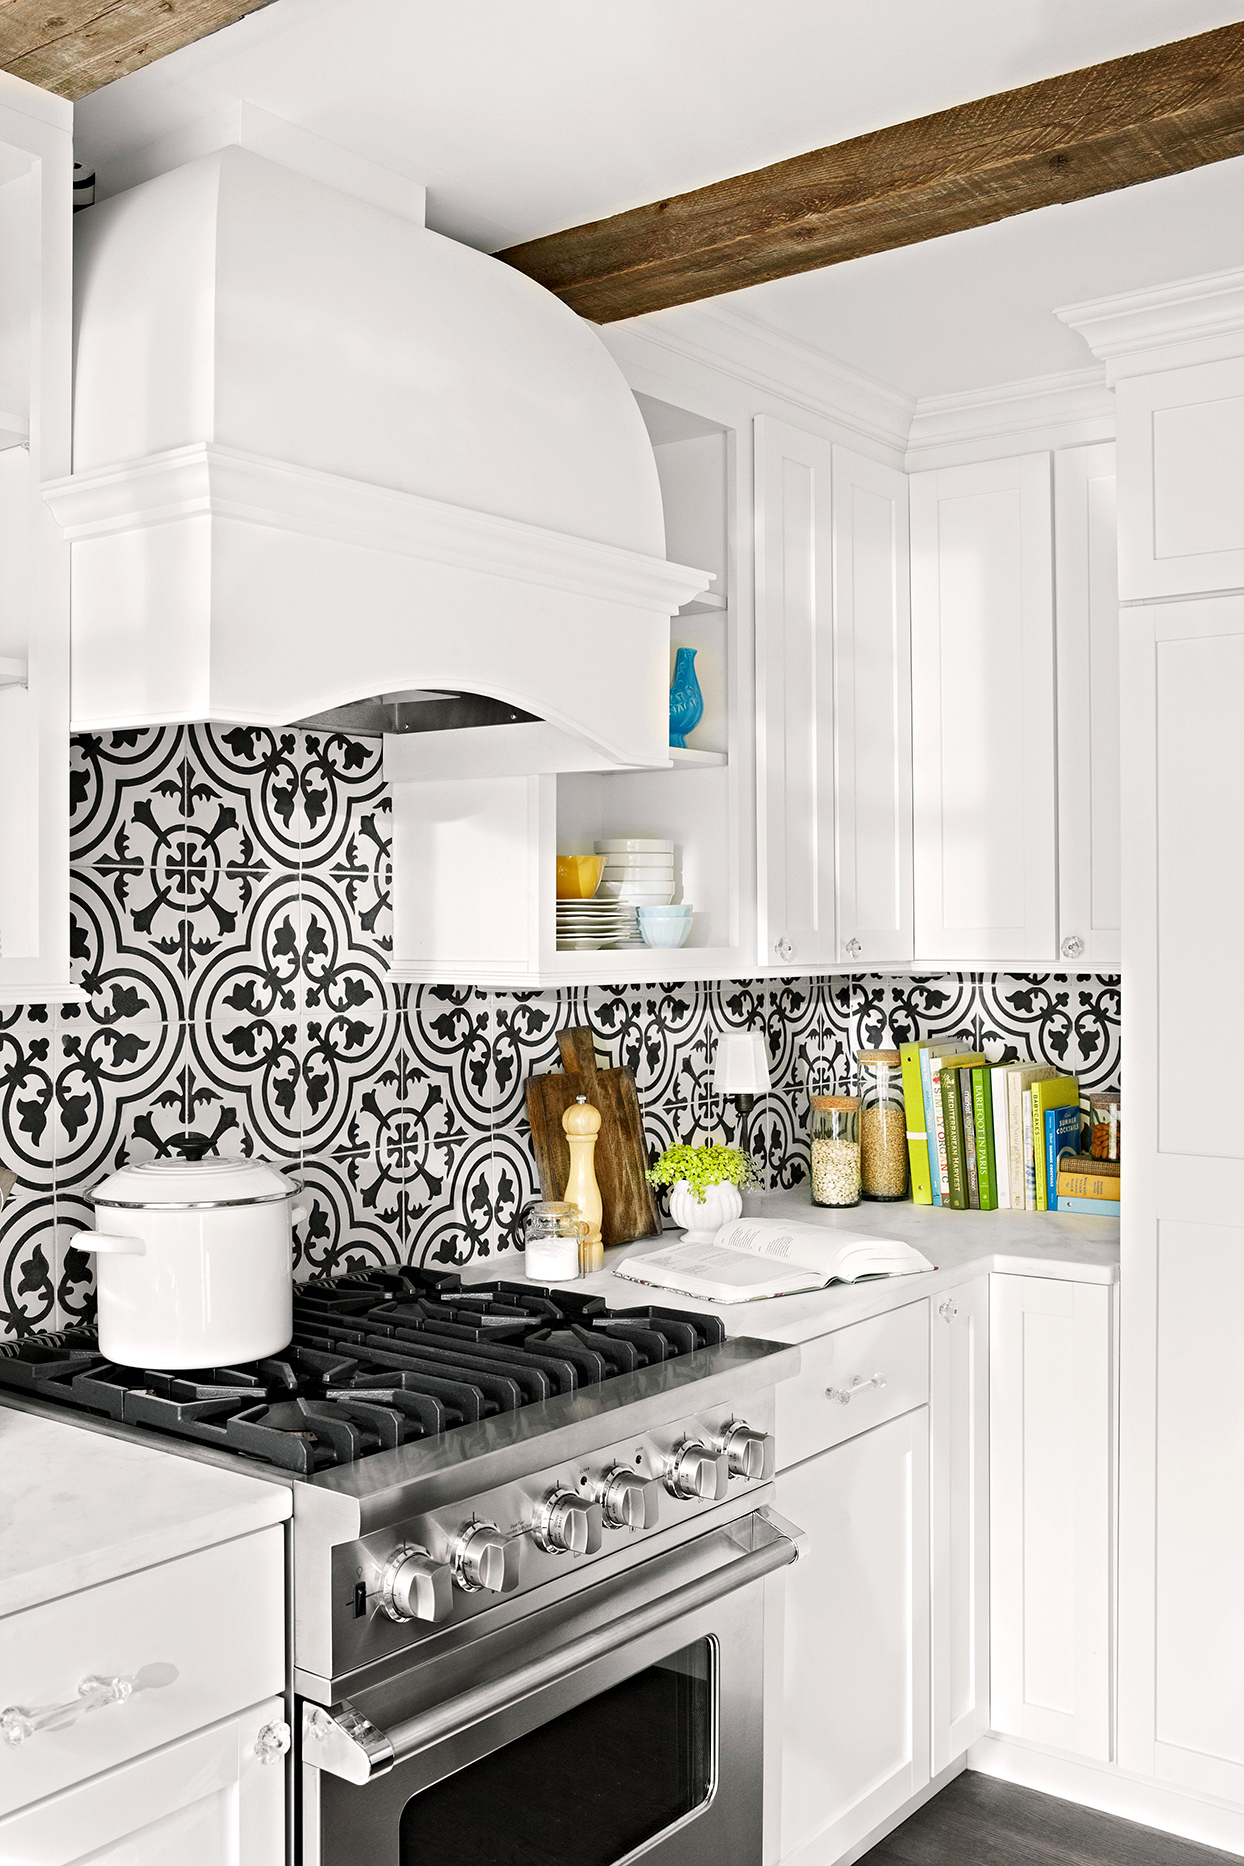 17 Budget Friendly Backsplash Ideas That Only Look Expensive Better Homes Gardens